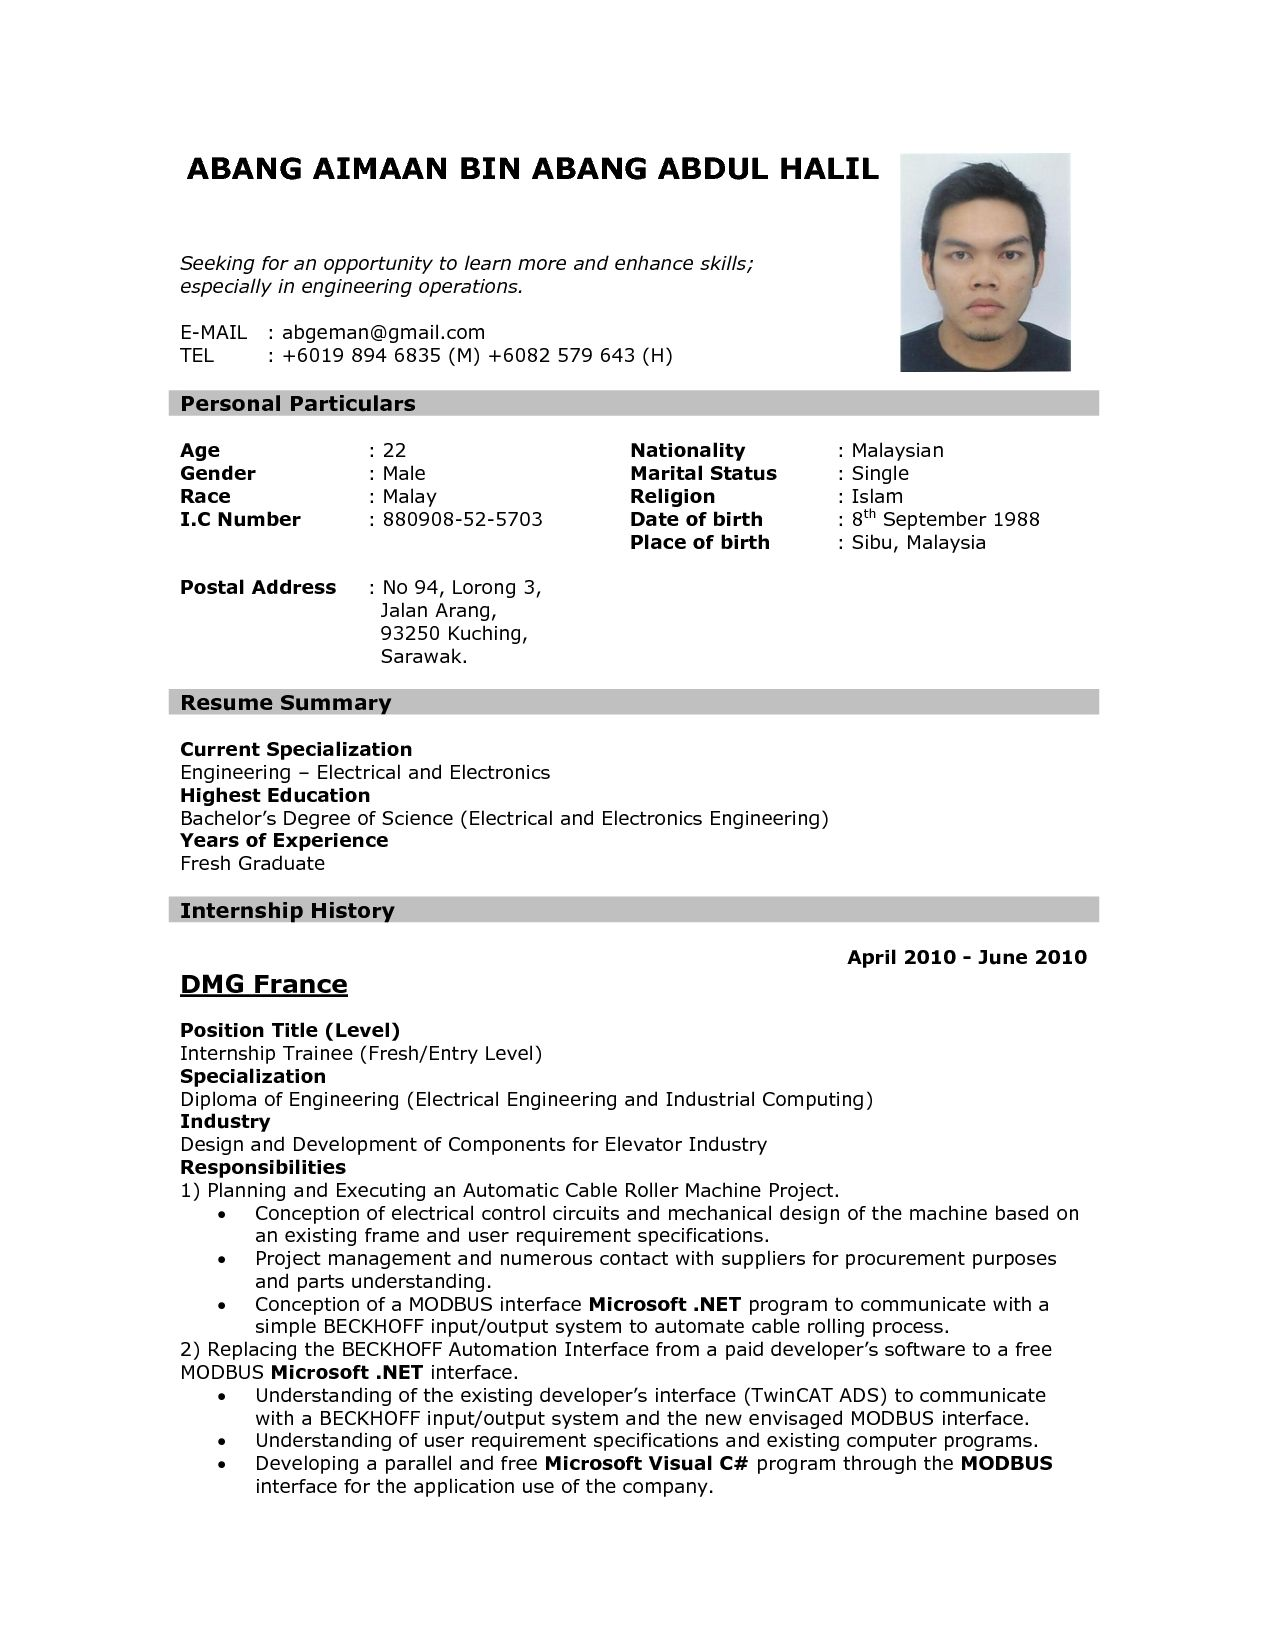 Free Blank Resume Form Resume Advice Orglearn Format Of Resume For Job Application To Download Data